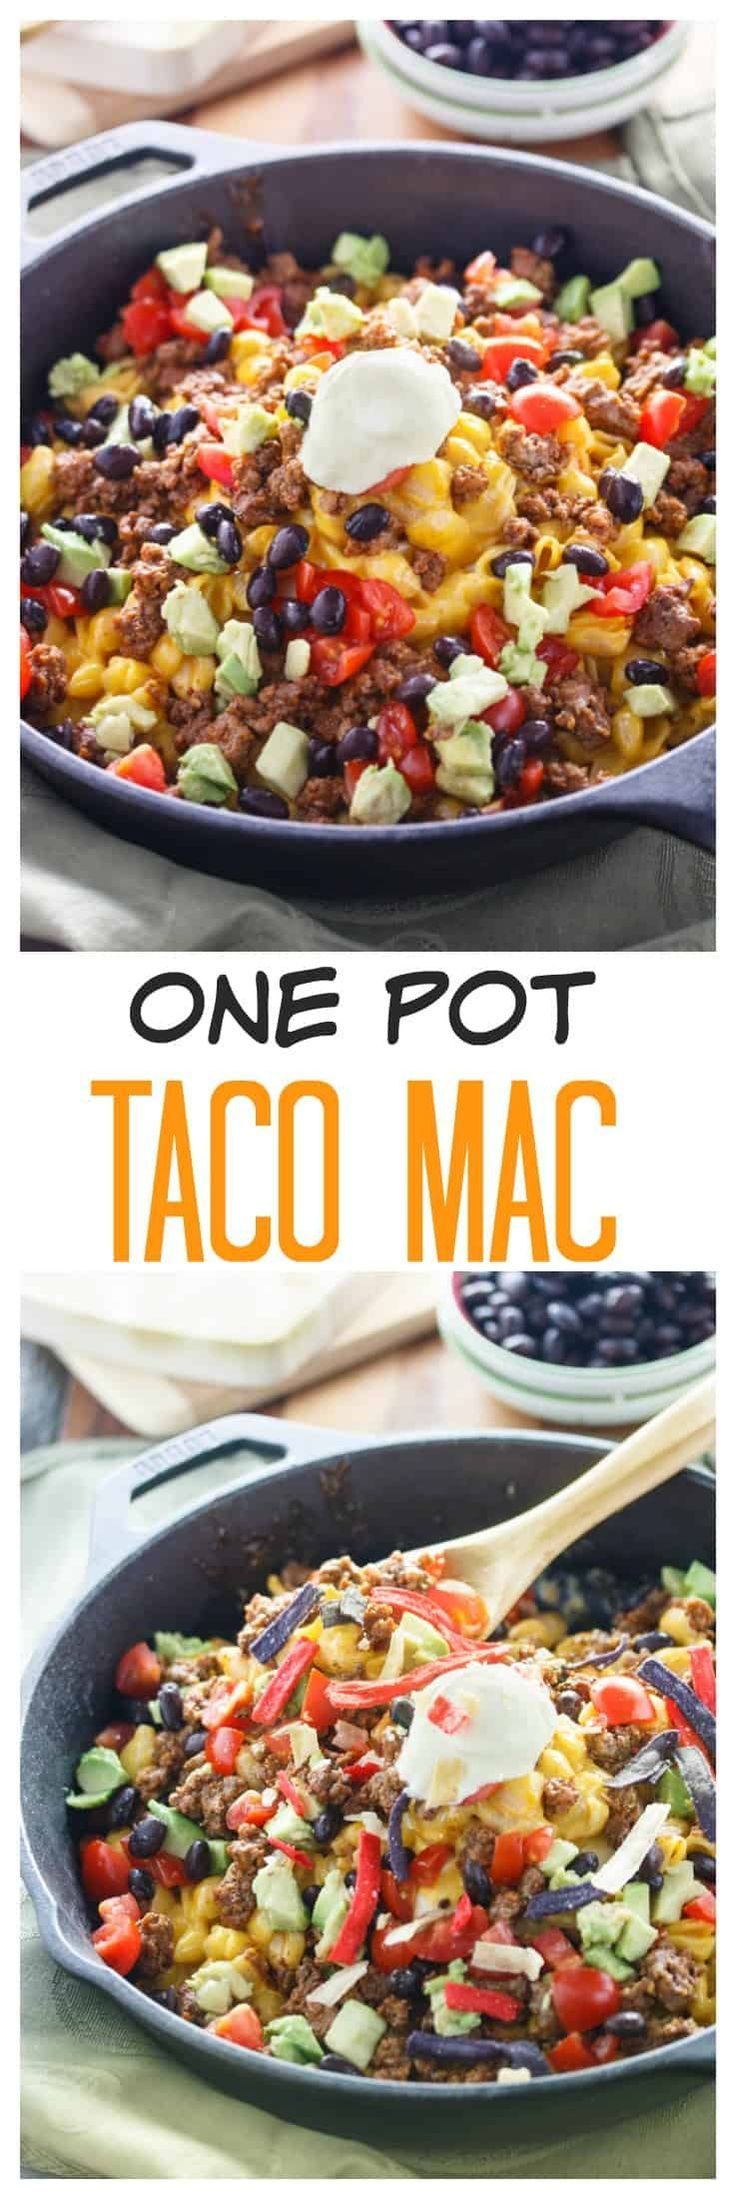 Creamy macaroni and cheese loaded with mouth watering taco fixings, prepared in a single pot and per